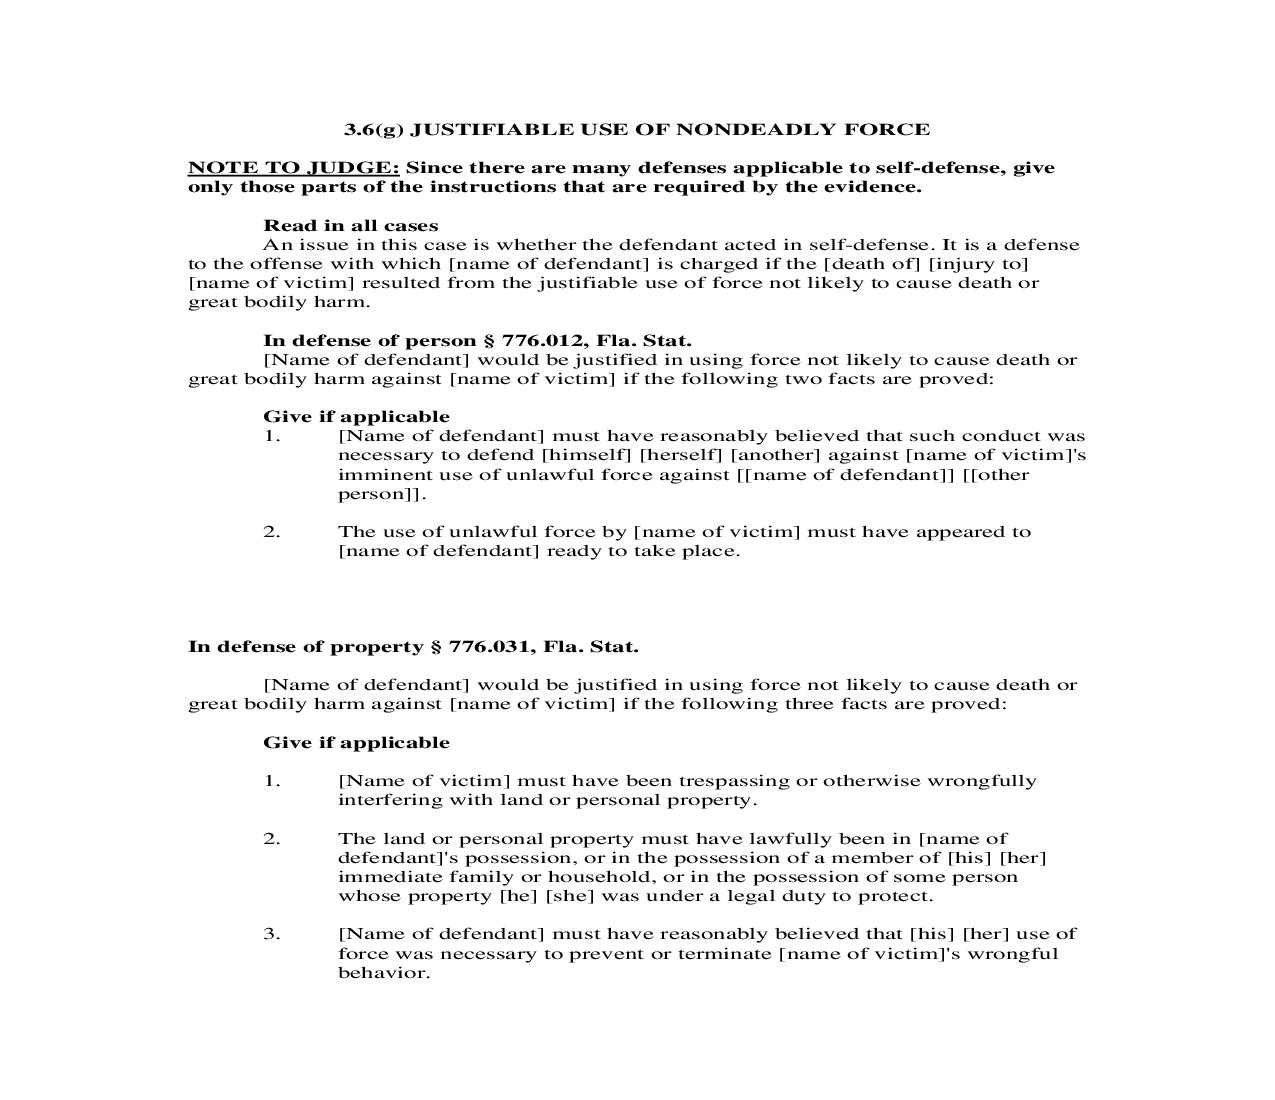 3.6(g). Justifiable Use Of Non Deadly Force | Pdf Doc Docx | Florida_JI